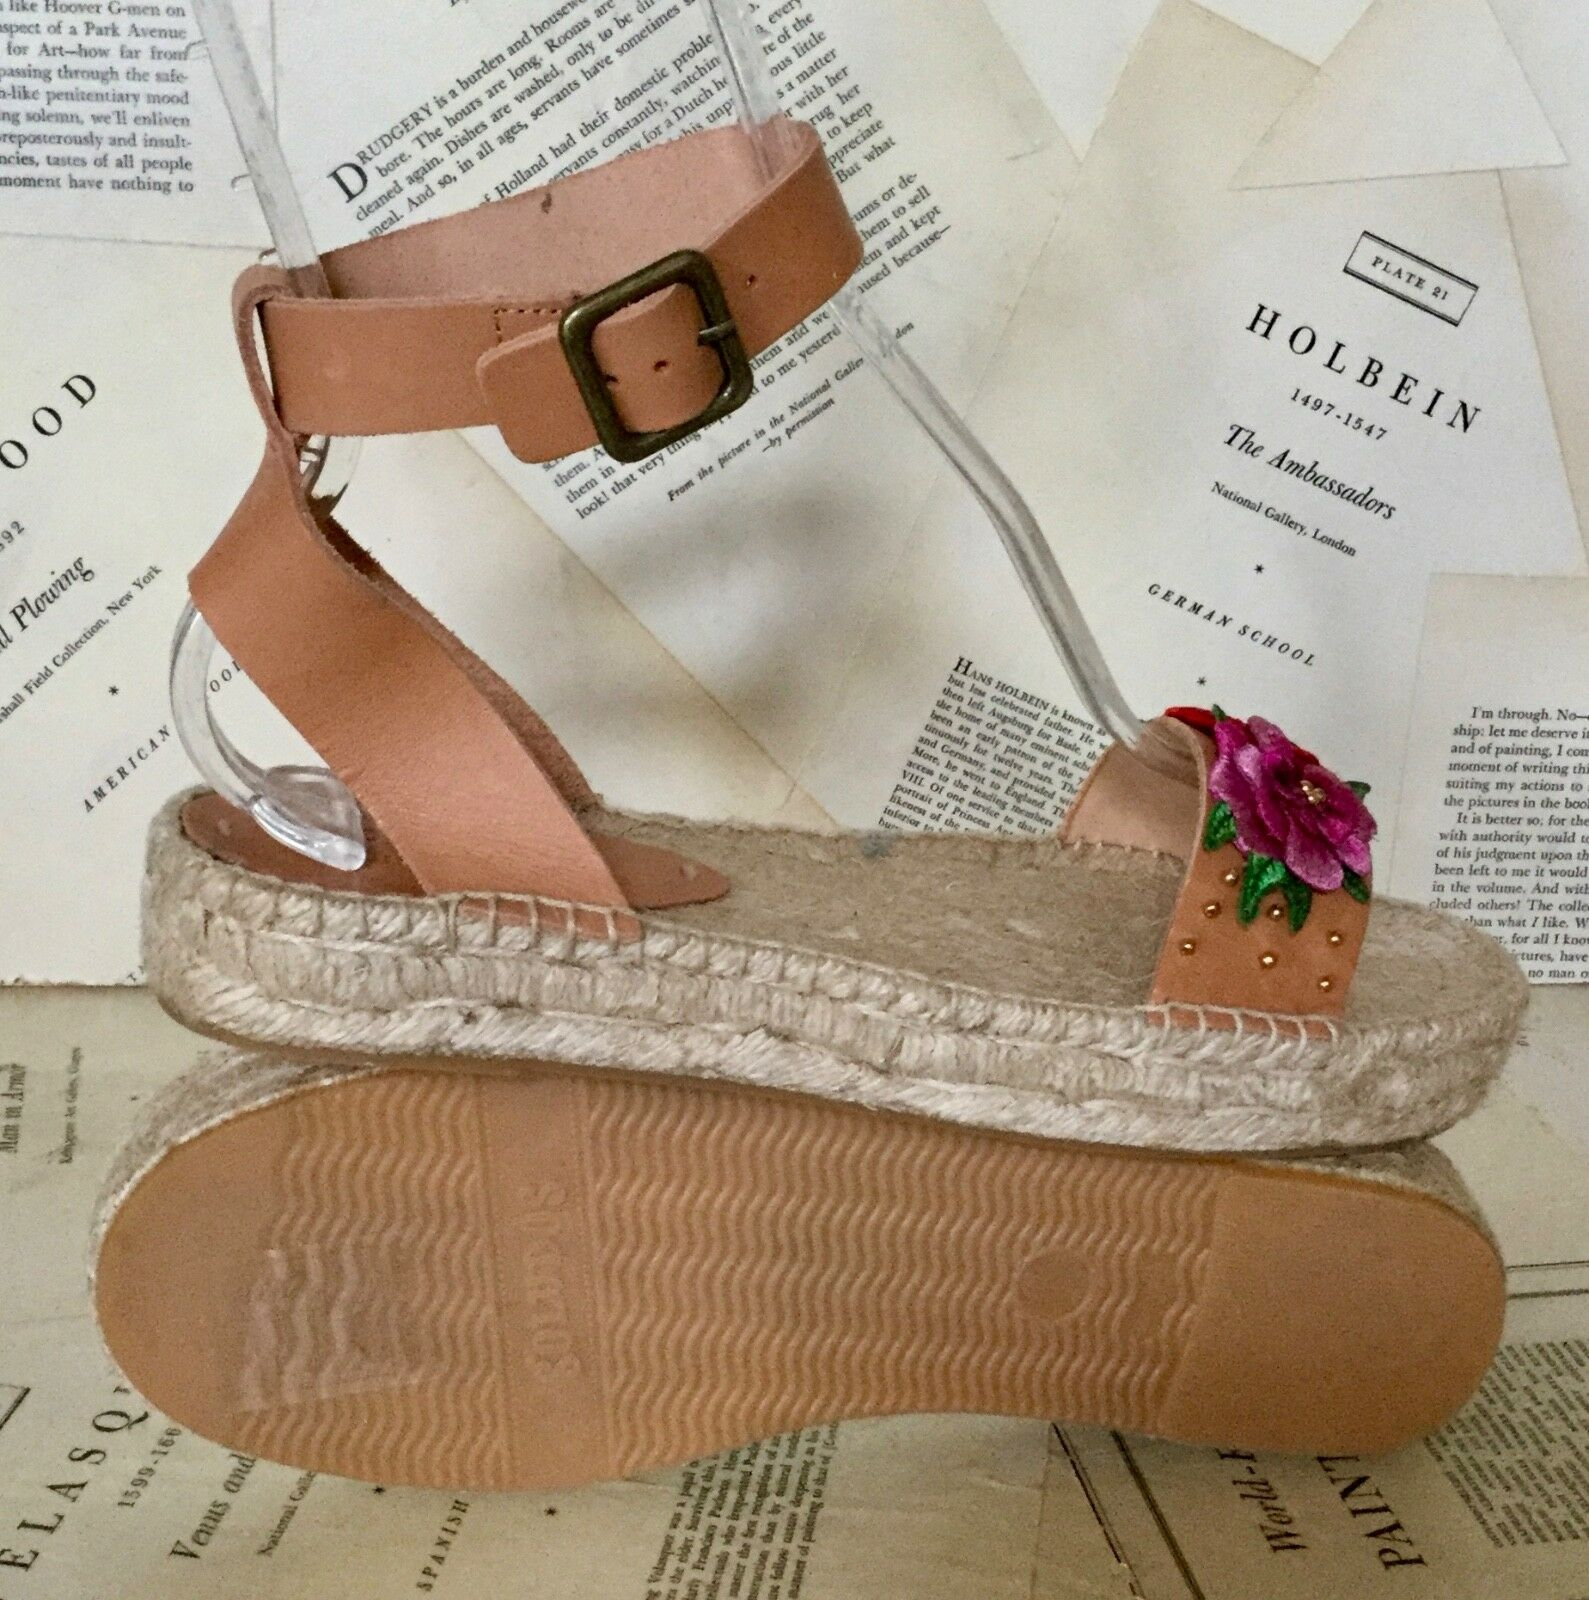 NIB Soludos tan tan tan Rosa Leather Appliqué Flower Raffia Wedge Sandal 10 5446a2